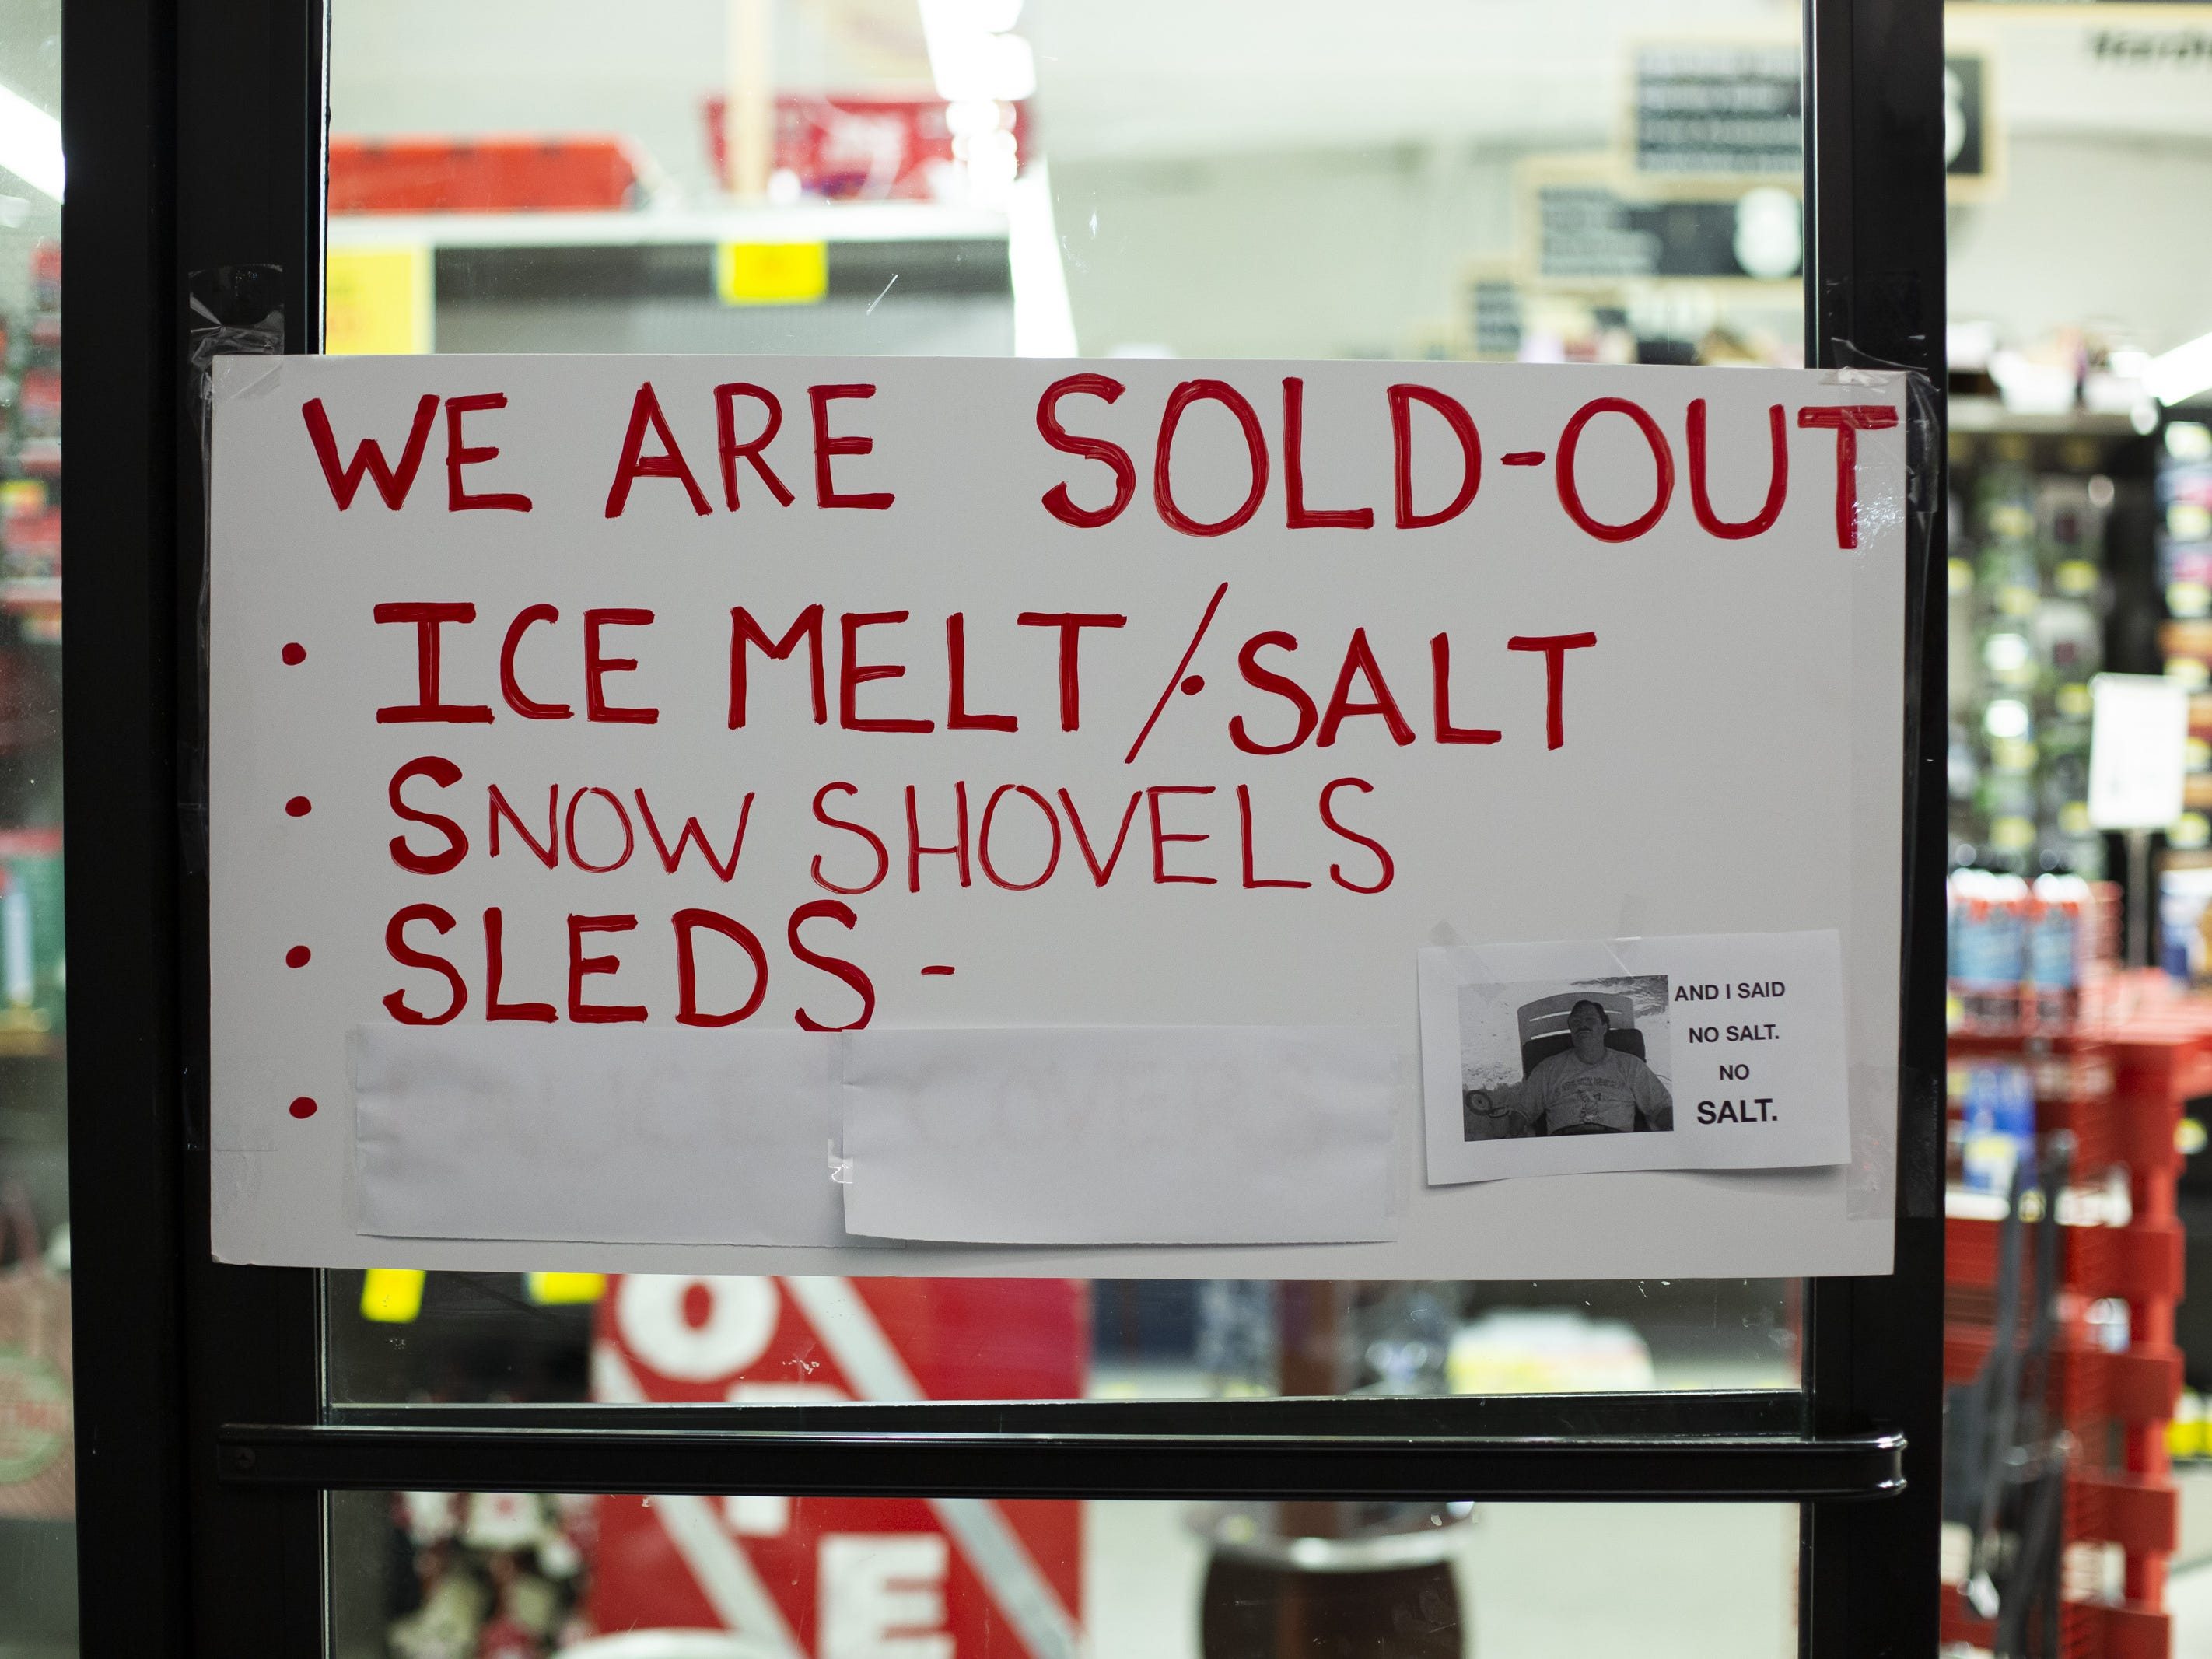 A sign at a hardware store warns customers that there is no remaining ice melt, salt, snow shovels, or sleds for sale on February 8, 2019 in Seattle, Washington.